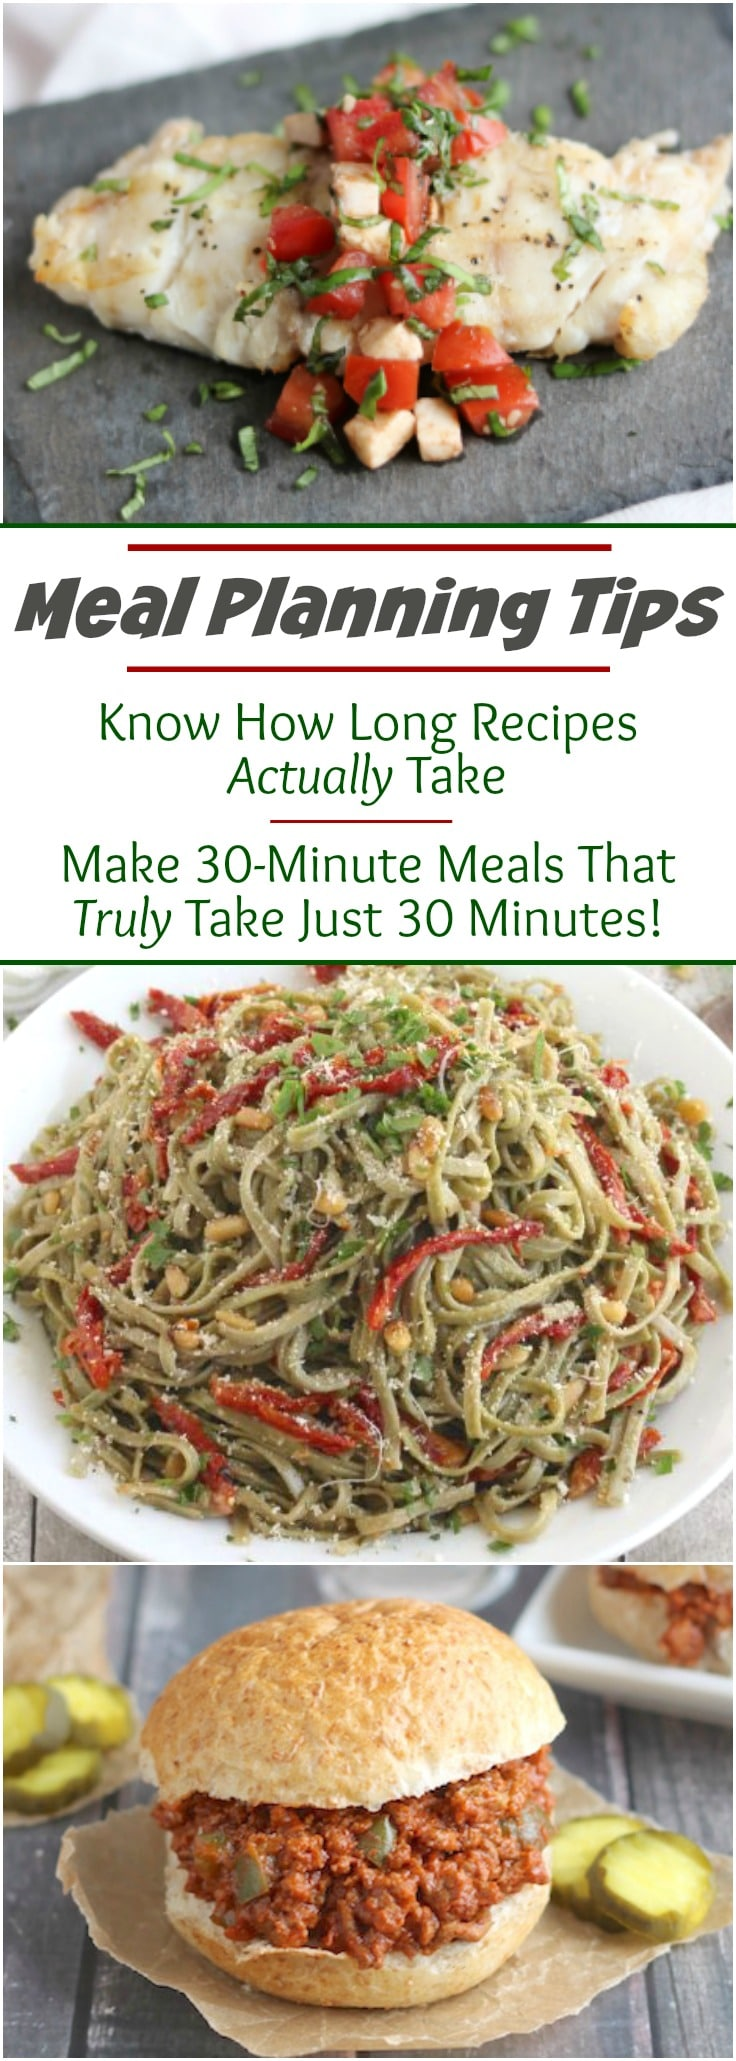 Insider info and tips to help you meal plan & cook smarter! Because meal planning isn't easy! For one thing ... why is it that recipe prep times never seem accurate, and 30-minute meals rarely seem to take just 30 minutes in real life? Ever wonder how on earth those recipe times get calculated? Here's how it all happens ... and how you can use that info to cook smarter! So the next time you create a meal plan, you can maximize your time in the kitchen! | www.TwoHealthyKitchens.com